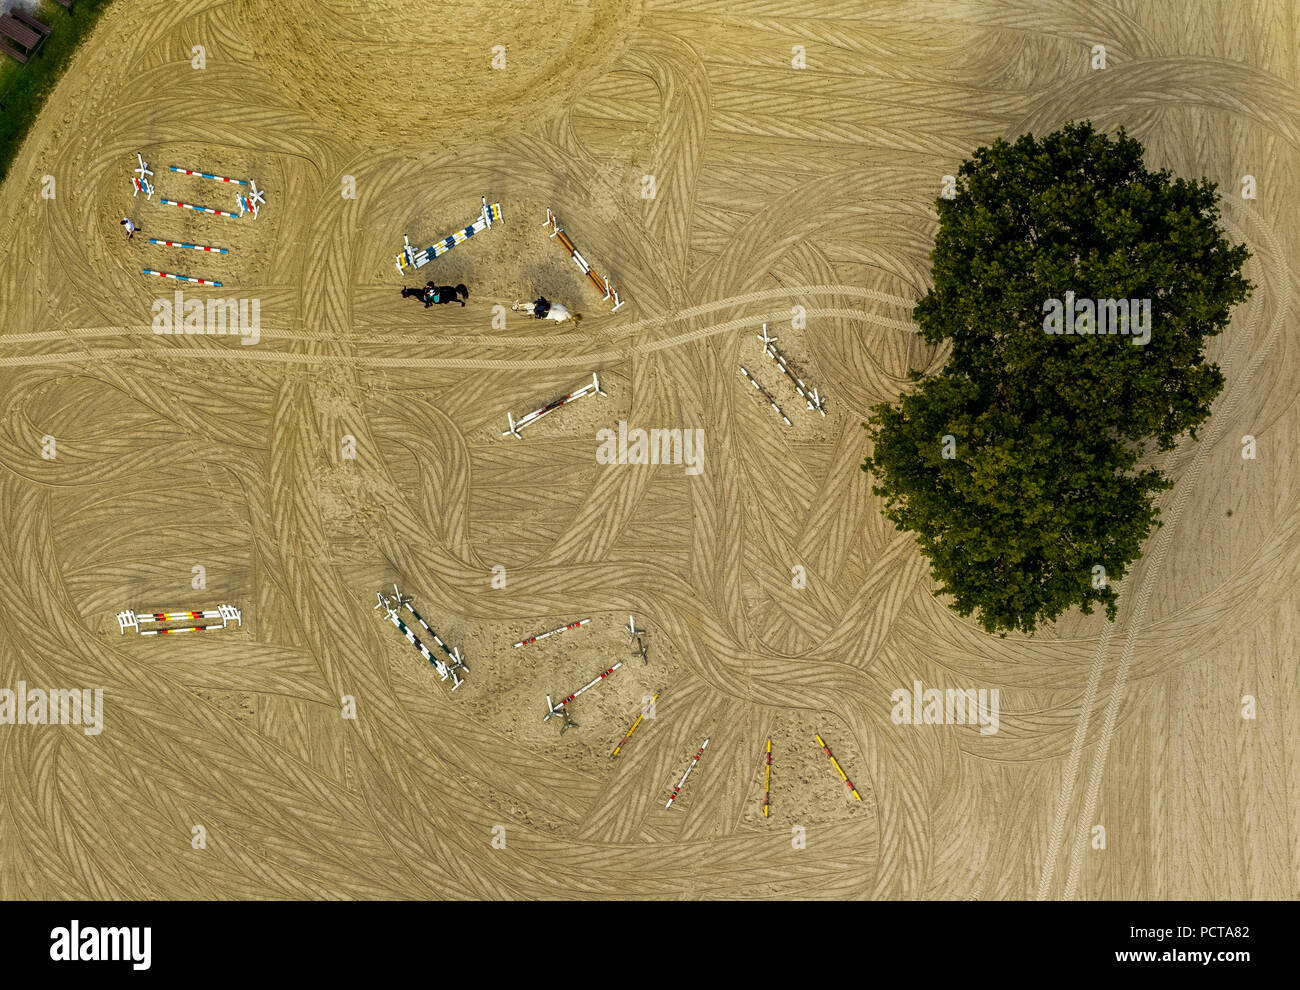 Riding arena with deciduous tree, obstacles for riding horses, sand jumping course, Halver, South Westphalia, North Rhine-Westphalia, Germany - Stock Image